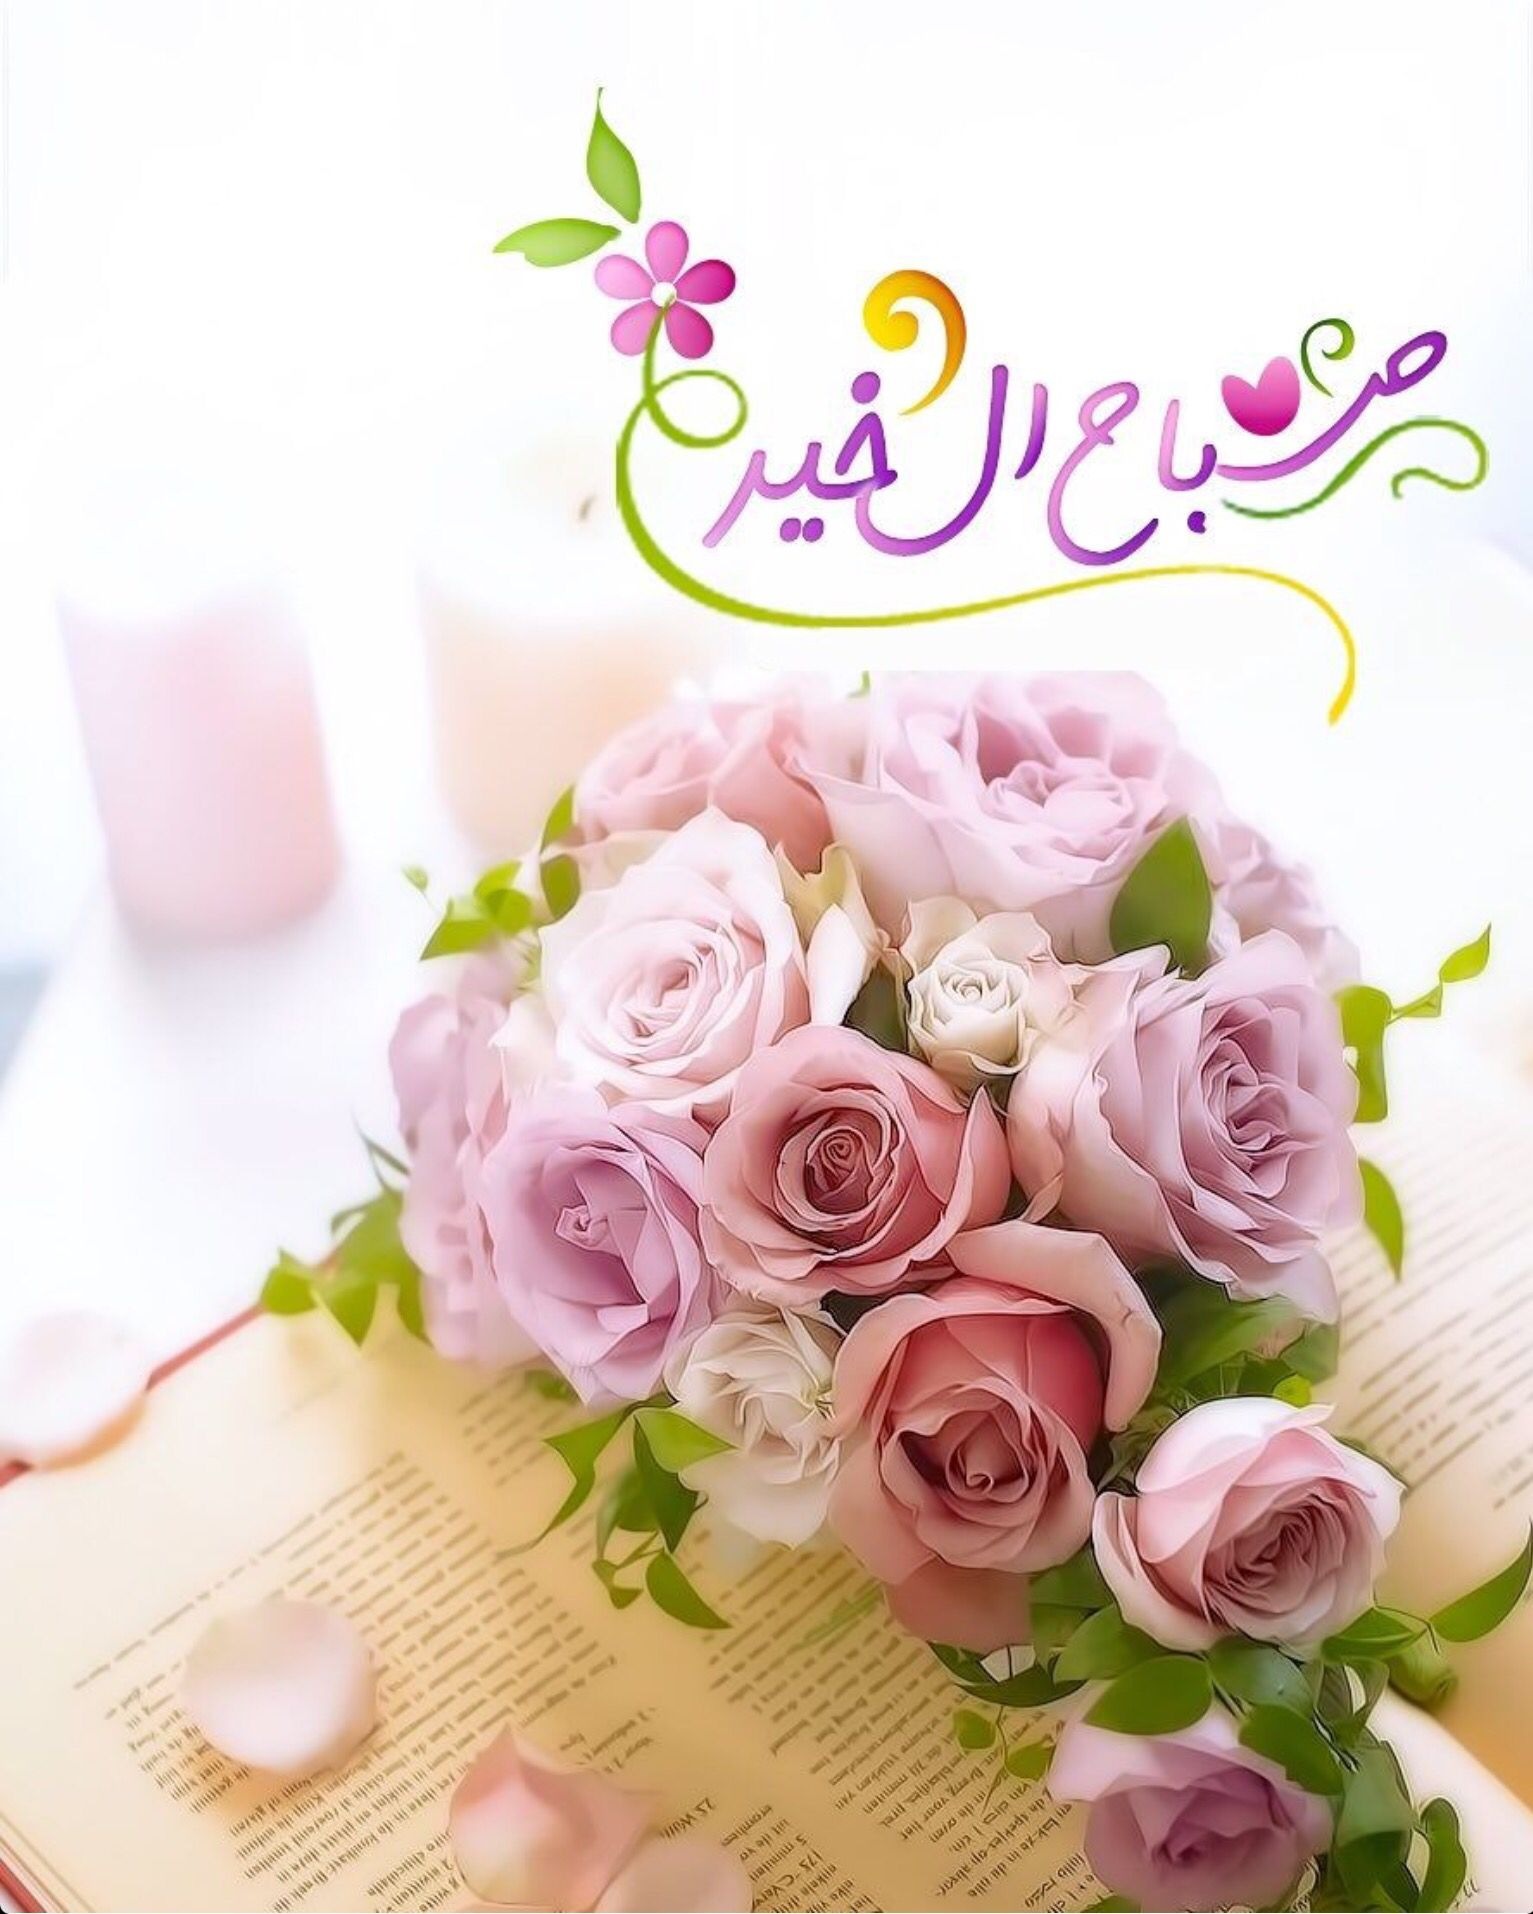 صباح الخير Beautiful Morning Messages Good Morning Flowers Good Morning Arabic